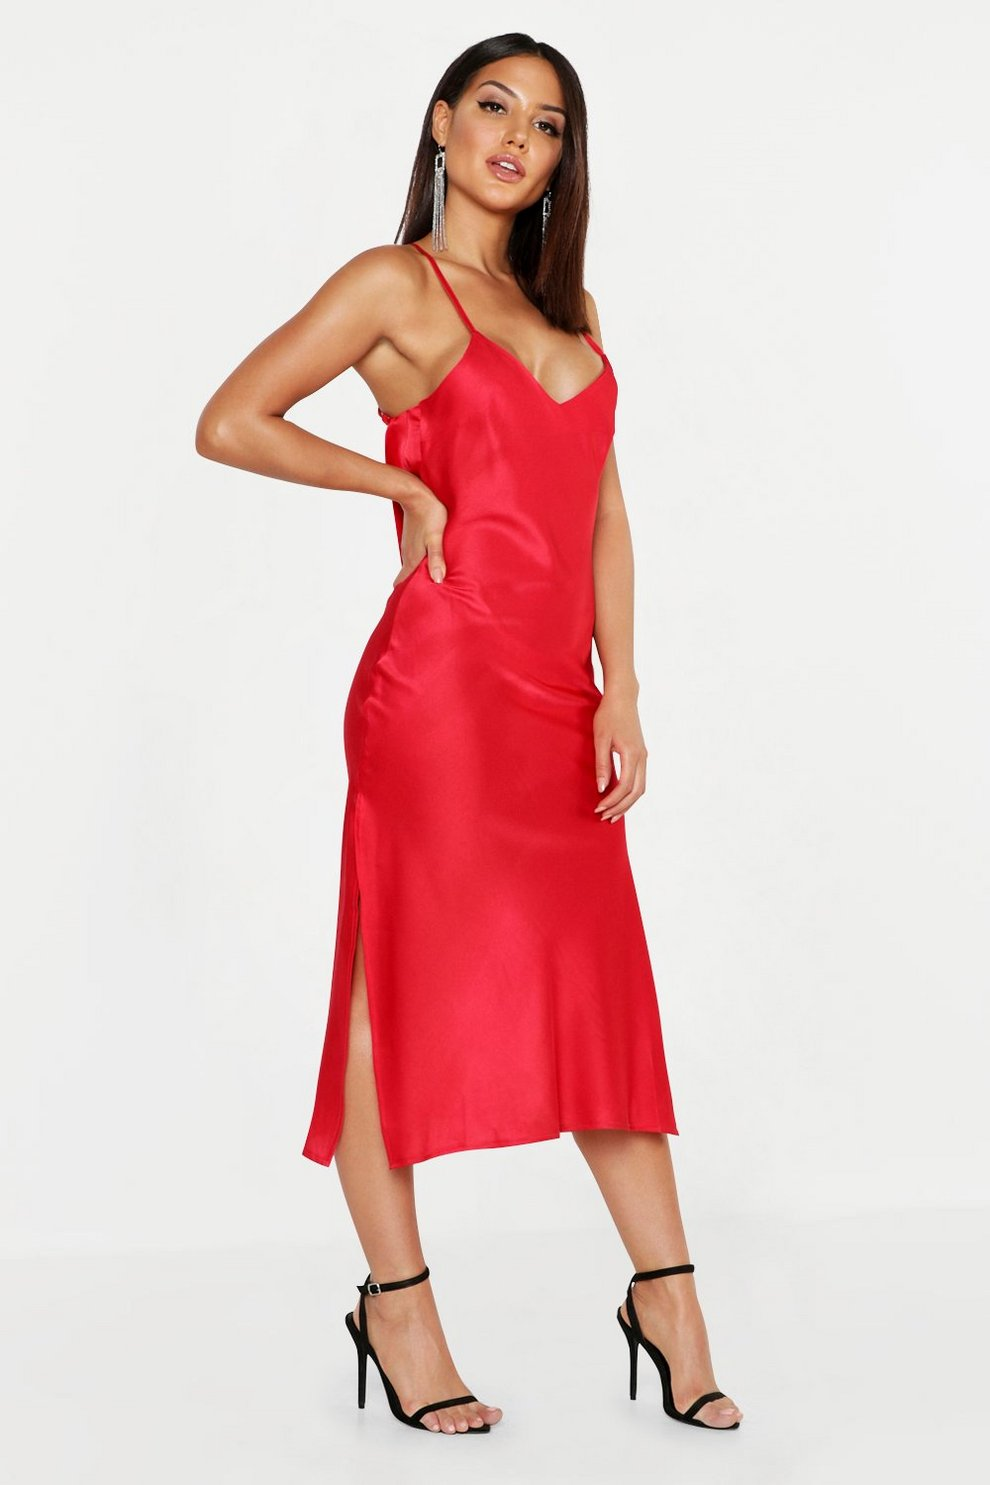 e5fa5cfa937a Womens Red Satin Cowl Back Midi Slip Dress